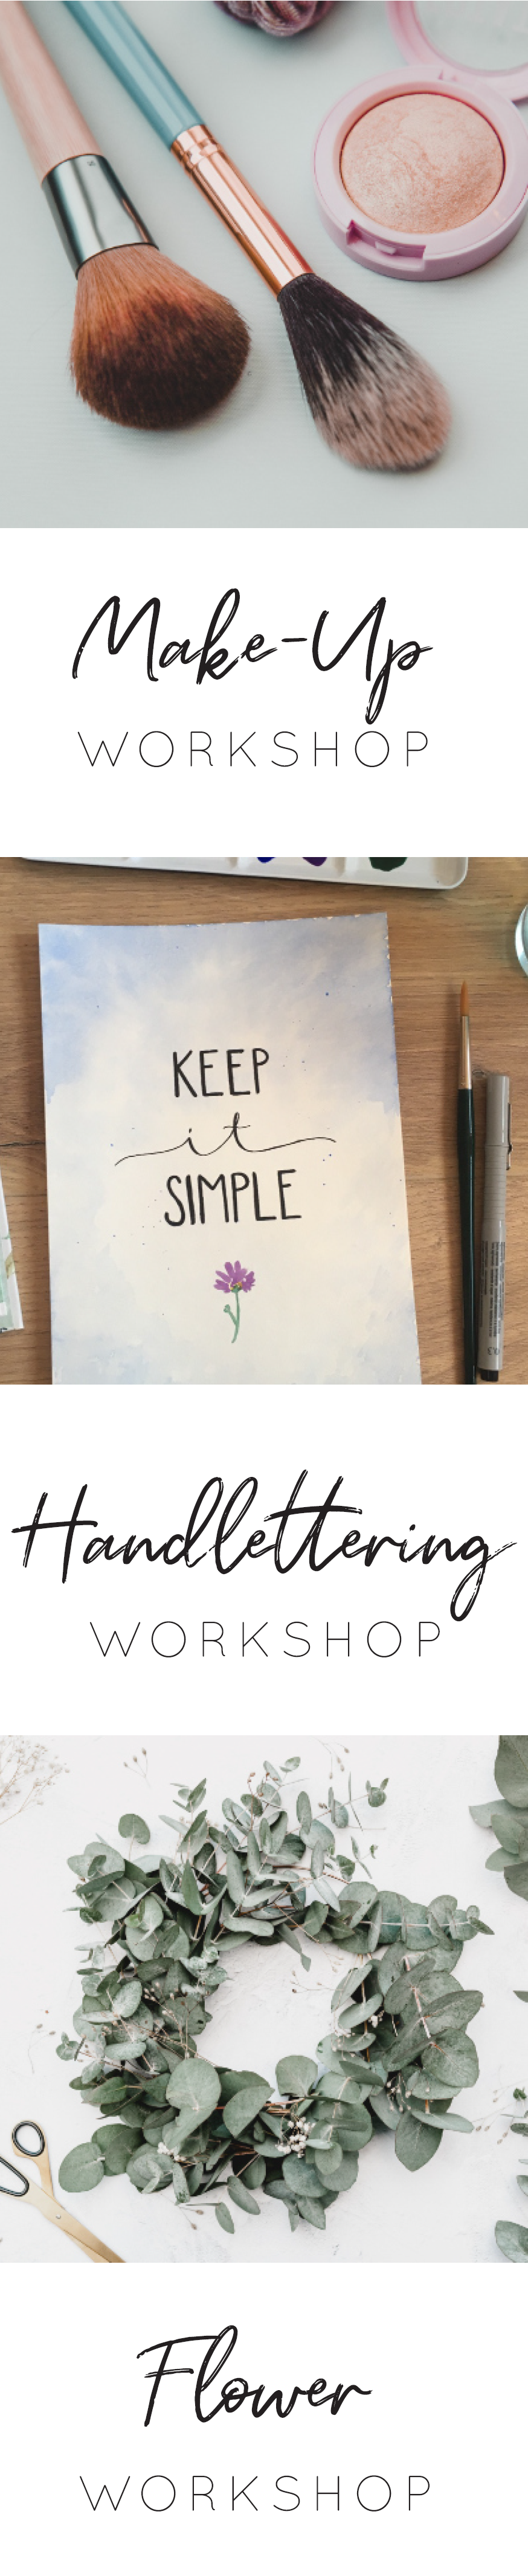 Workshop Make-Up Handlettering Flower Hochzeitshaus Laupheim HEY DAY White confetti Brautmode